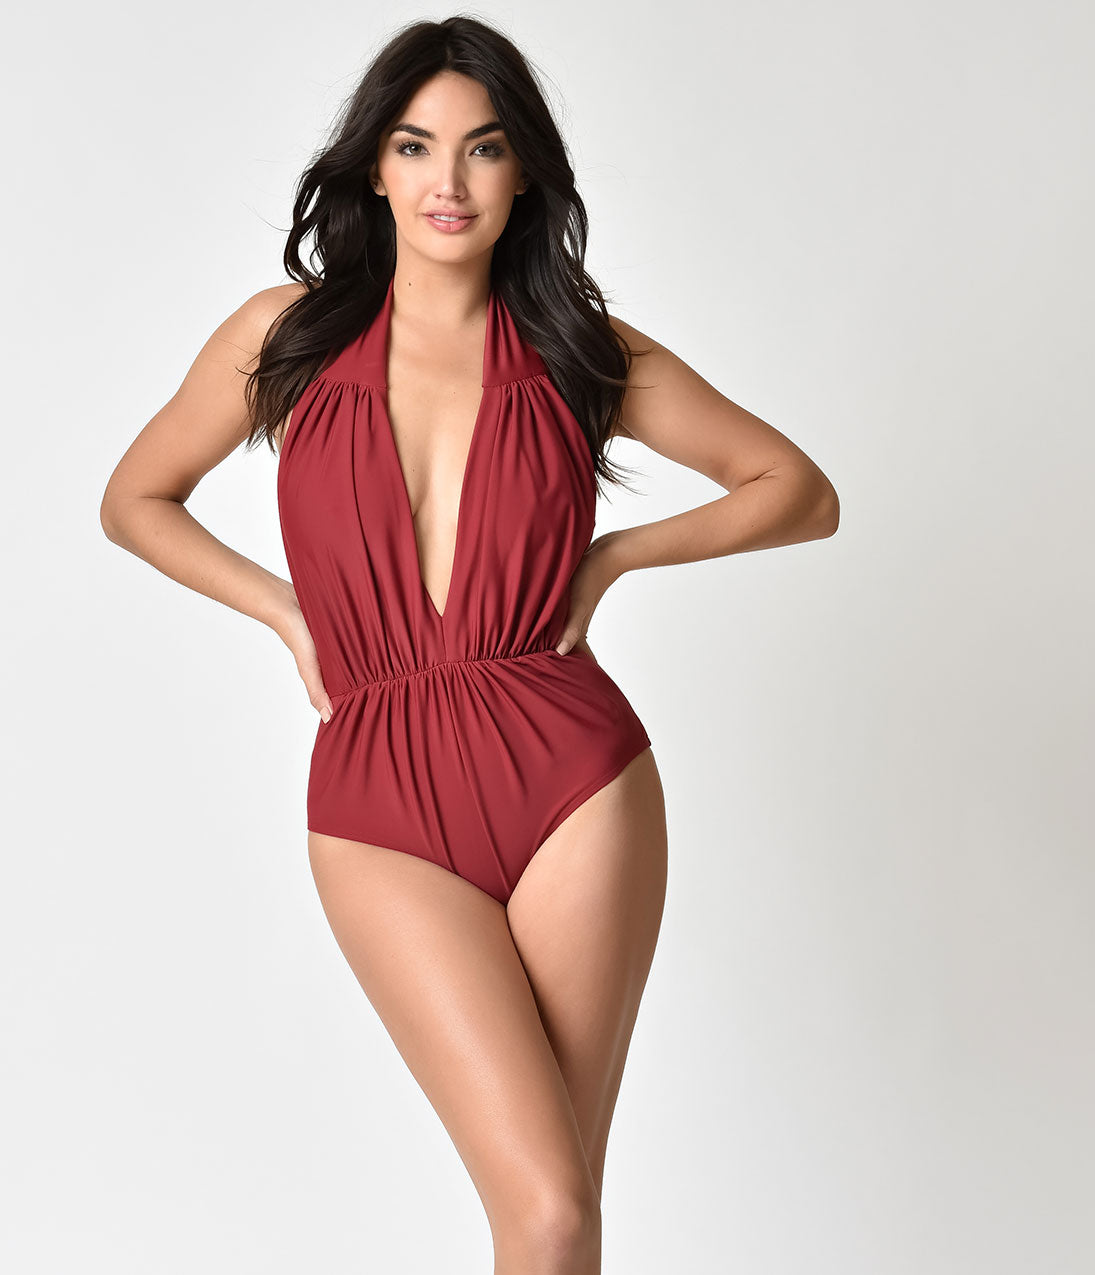 Vintage Bathing Suits | Retro Swimwear | Vintage Swimsuits Unique Vintage Burgundy Red Halter Shirred Derek One Piece Swimsuit $68.00 AT vintagedancer.com